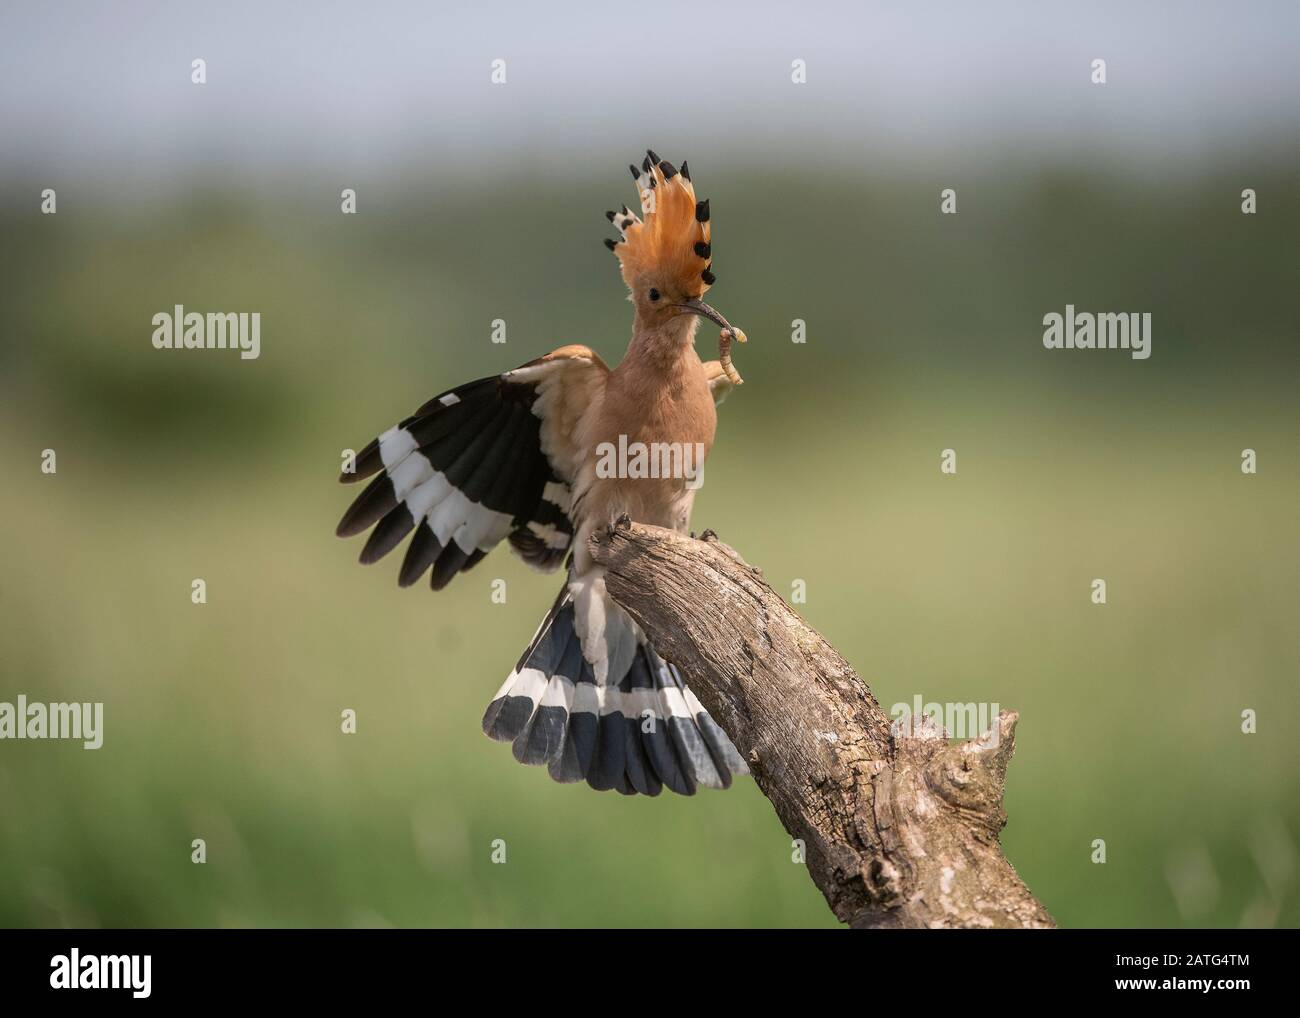 Hoopoe (Upupa epops), landing on branch with food in its bill, Hortobágy National Park, Hungary Stock Photo